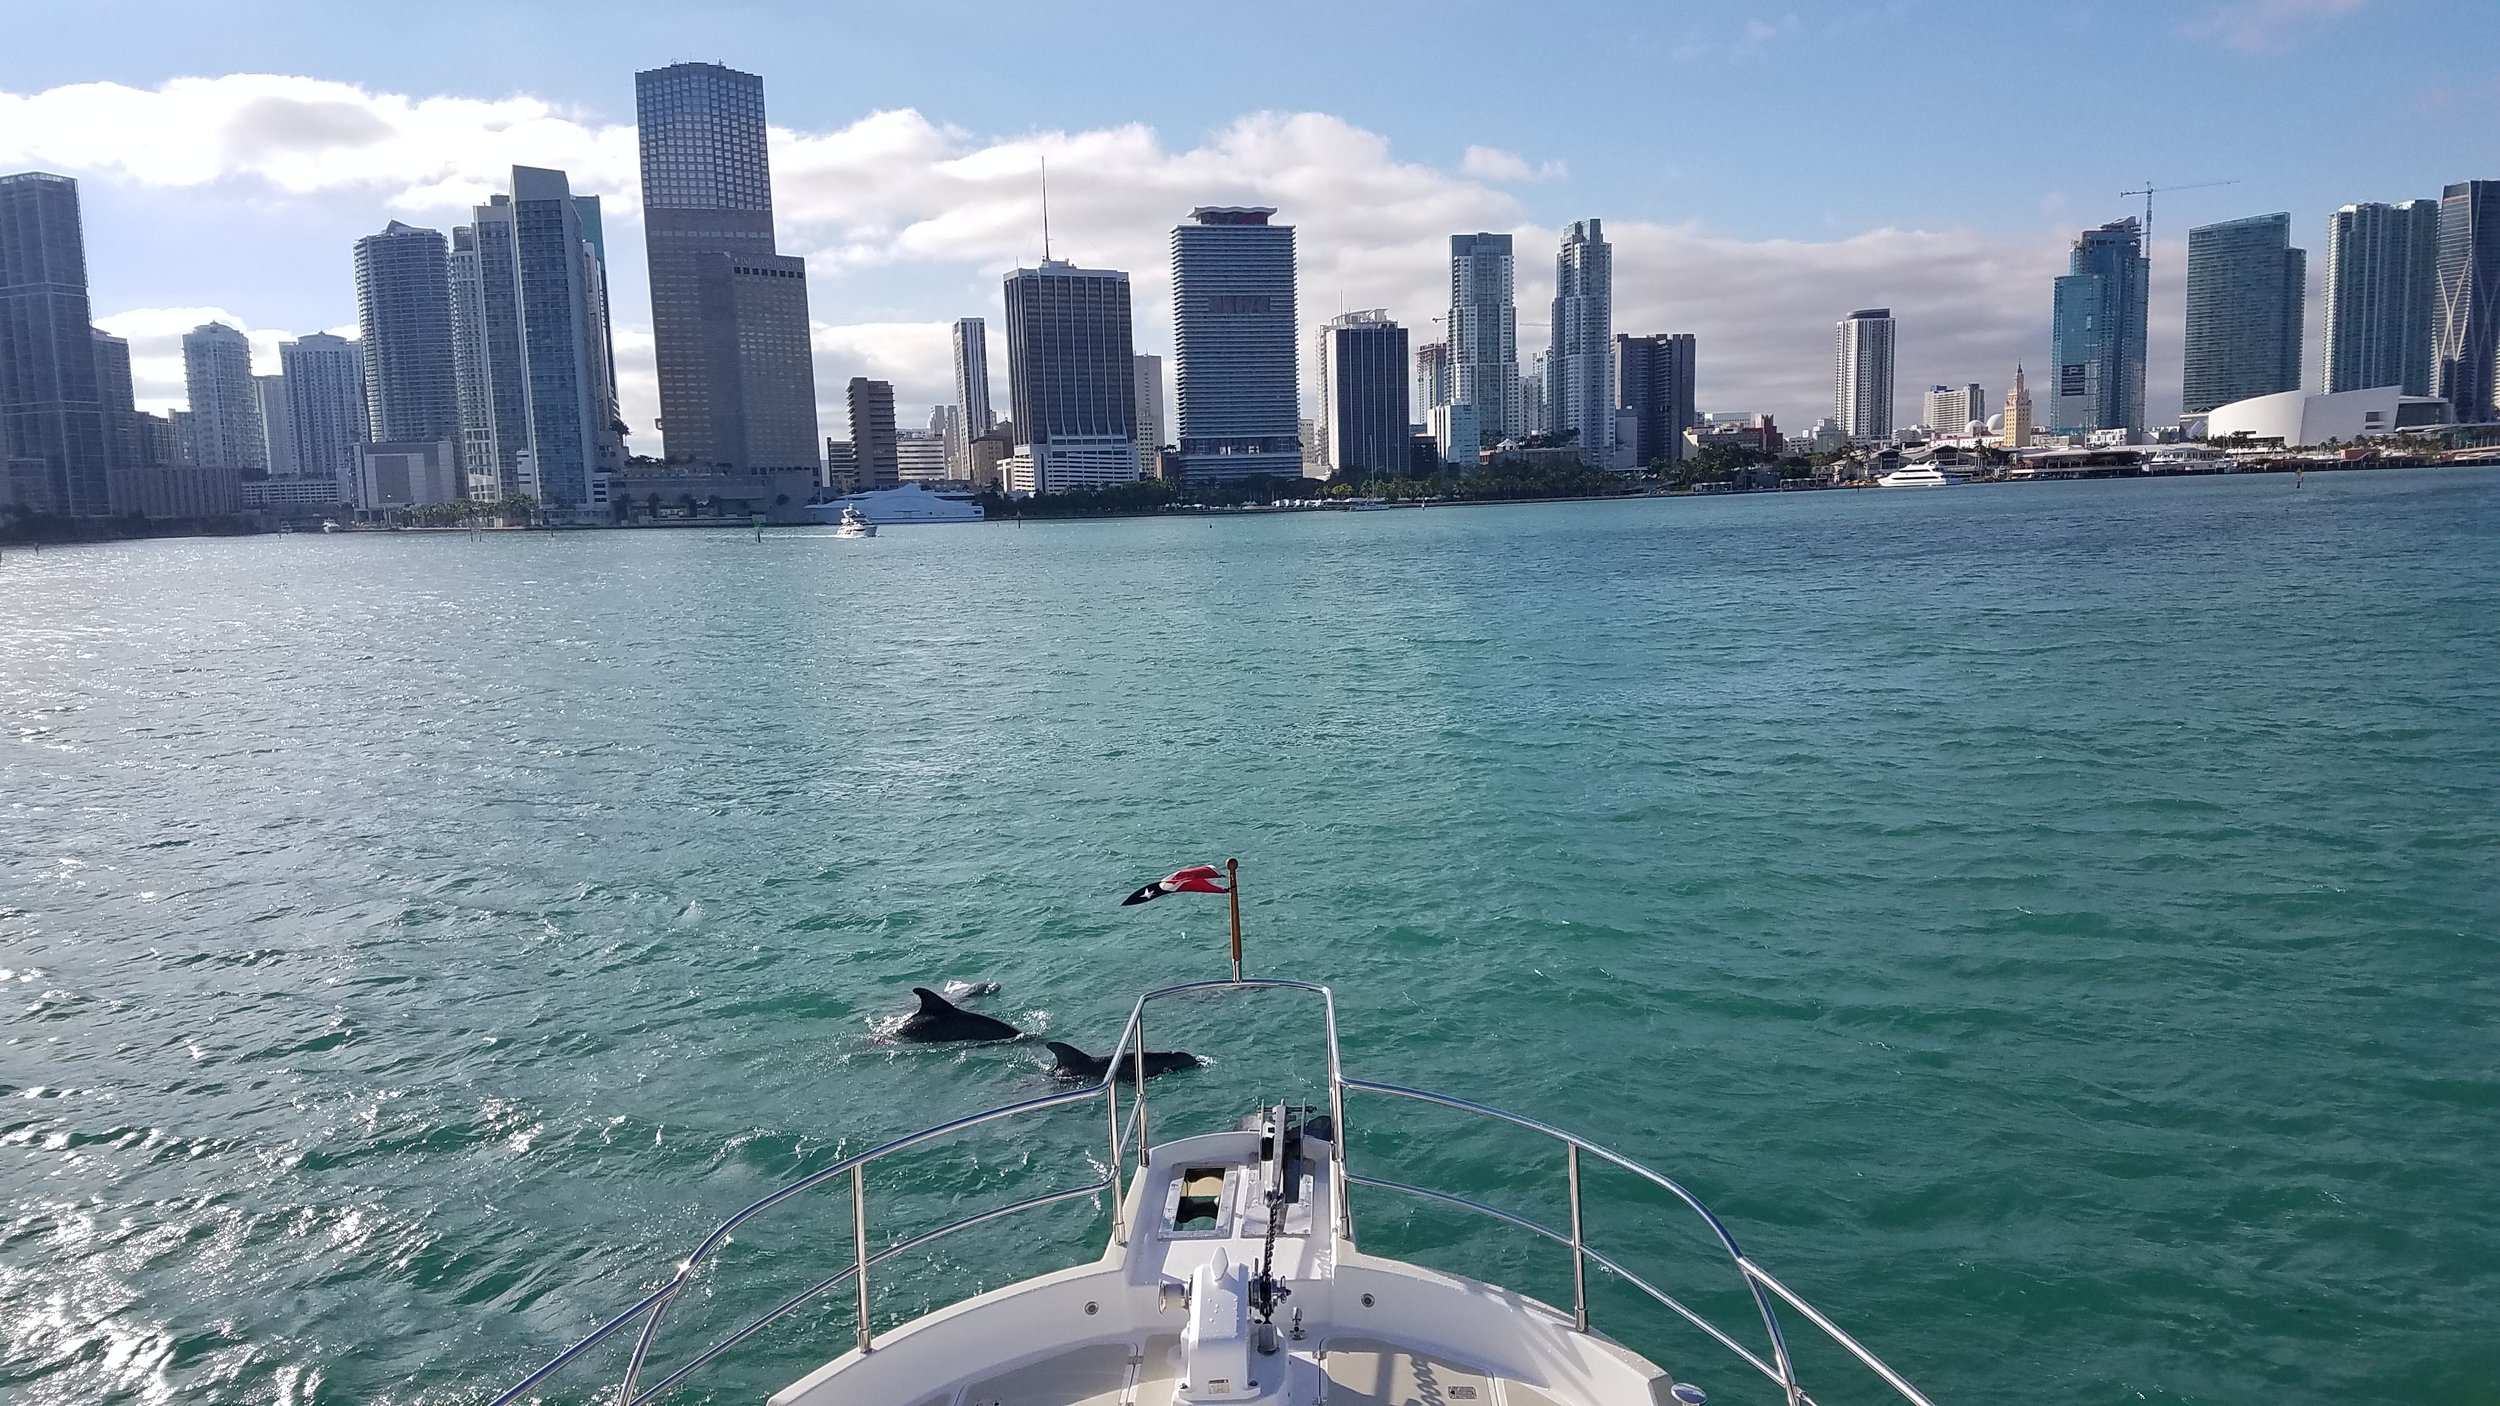 Dolphins welcomed us into the Miami harbor